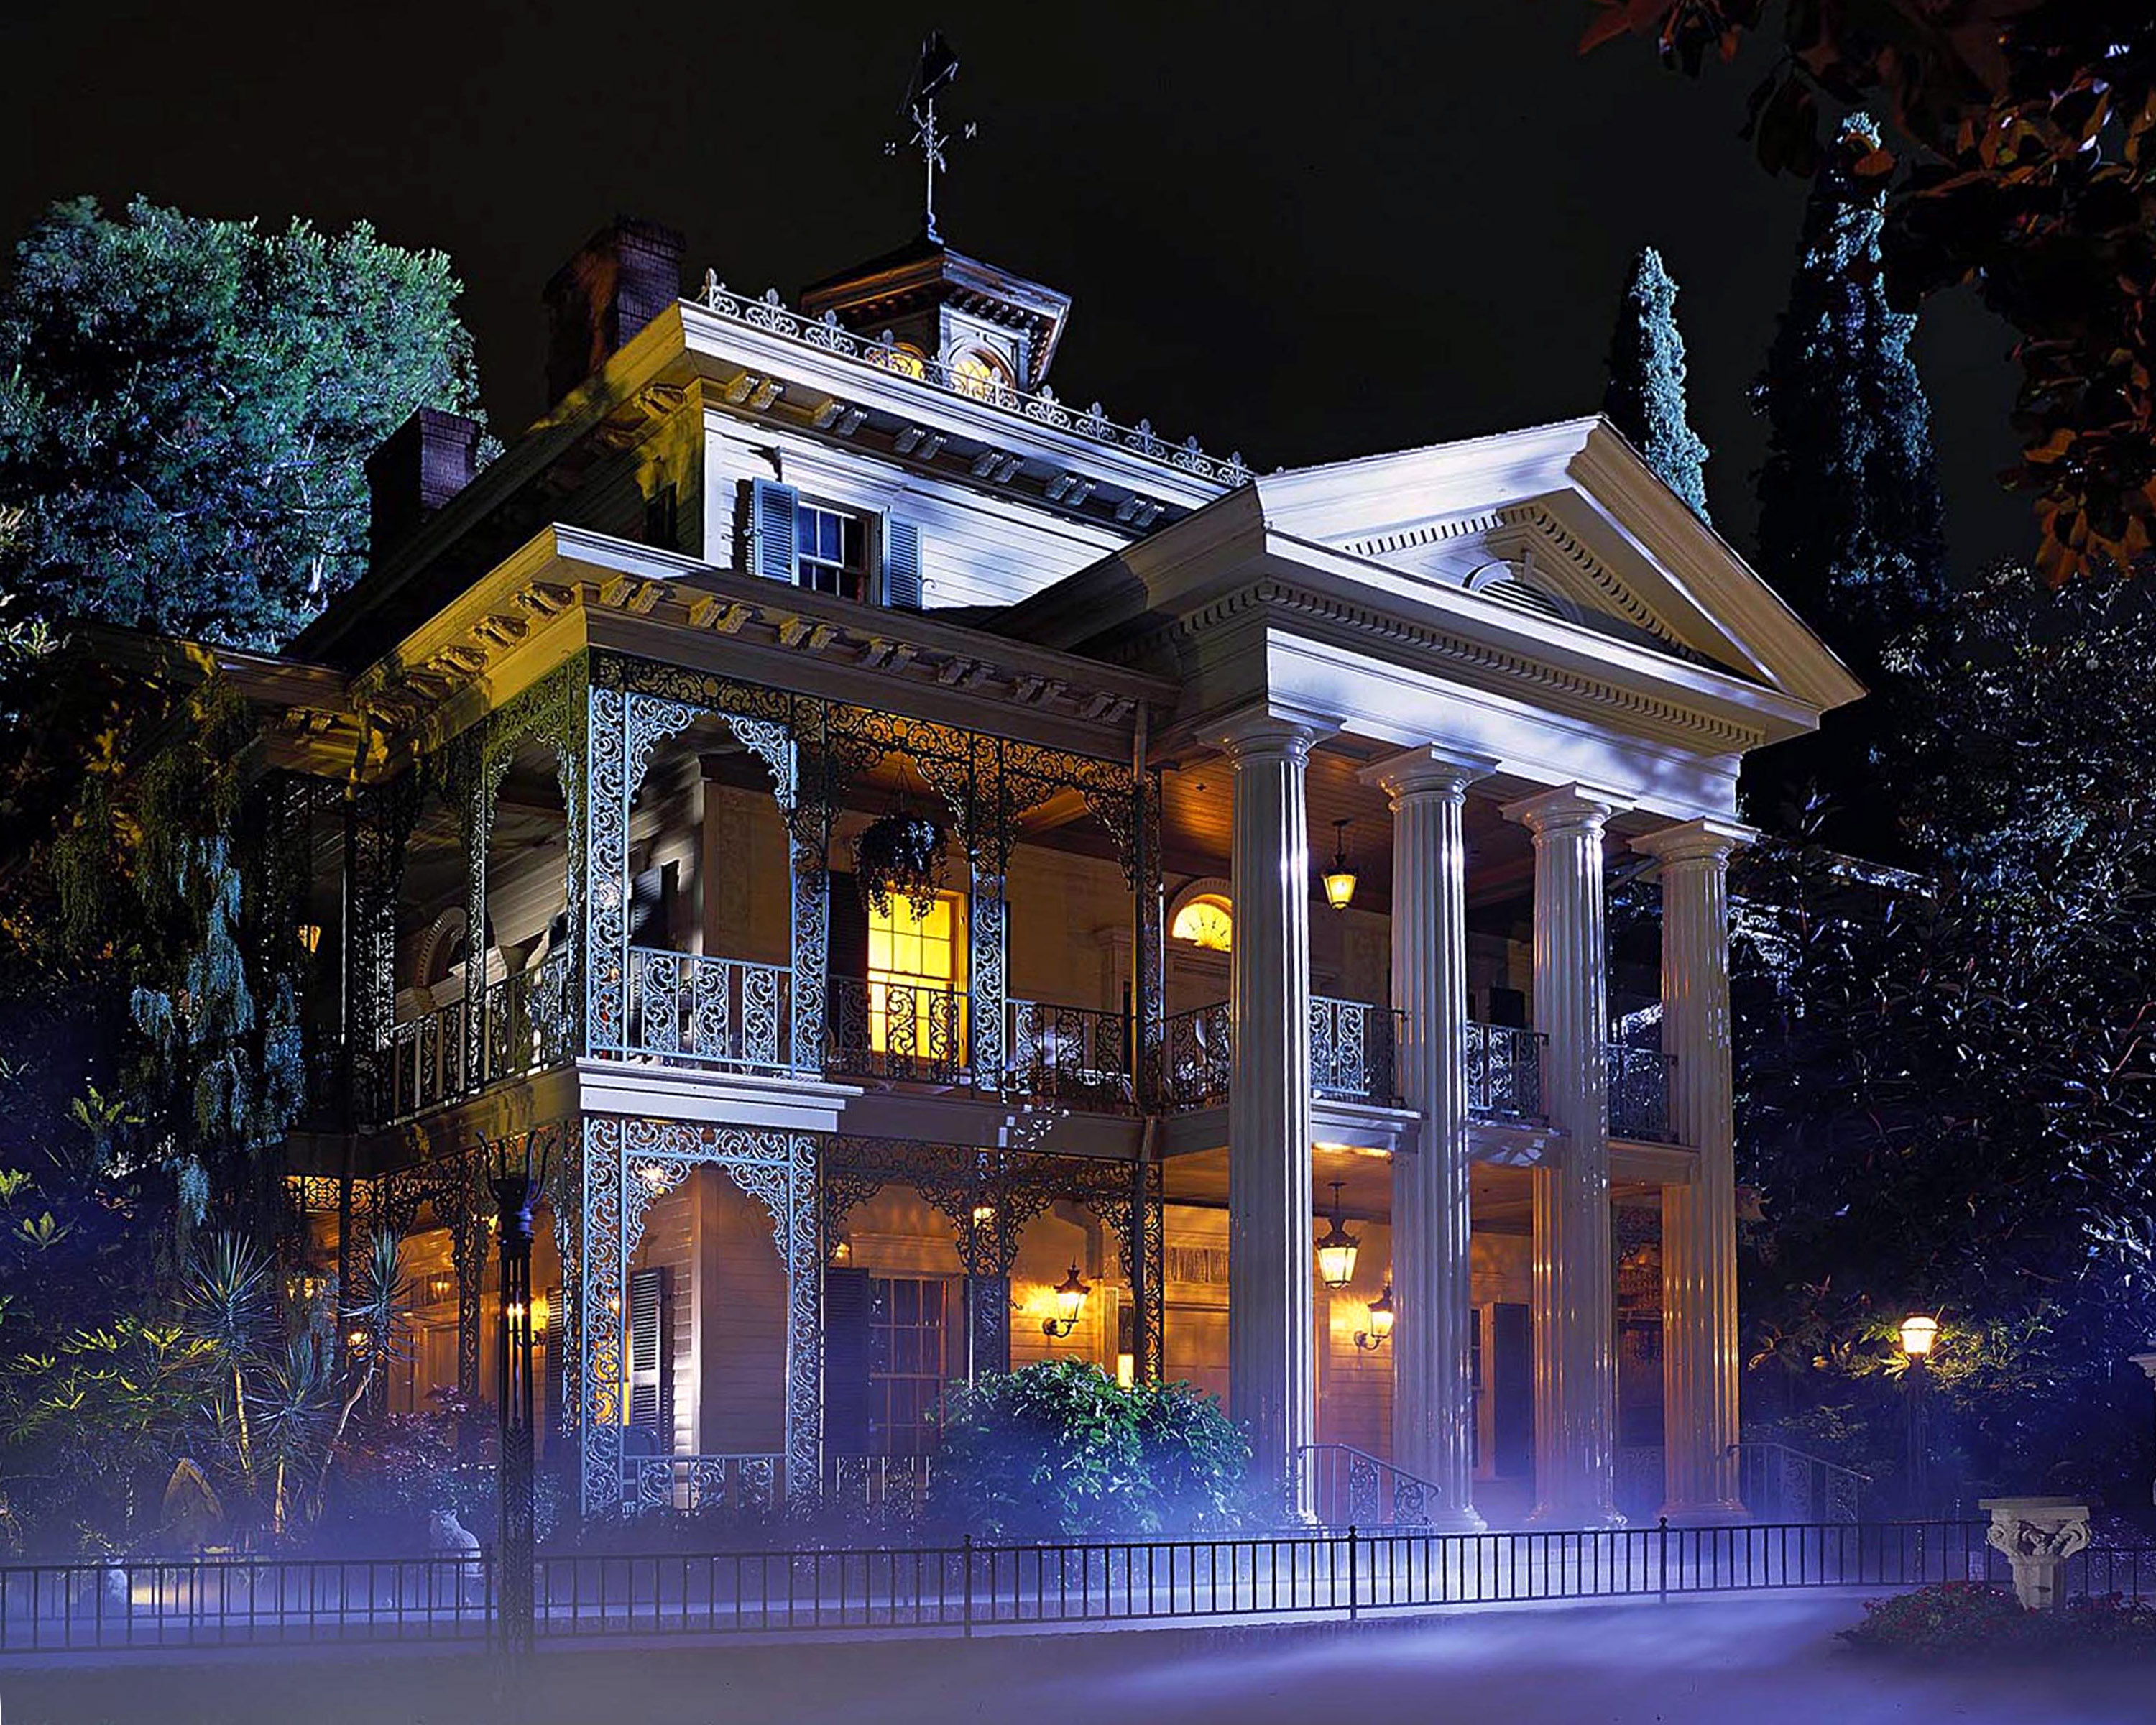 HAUNTED MANSION -Ð This New Orleans Square